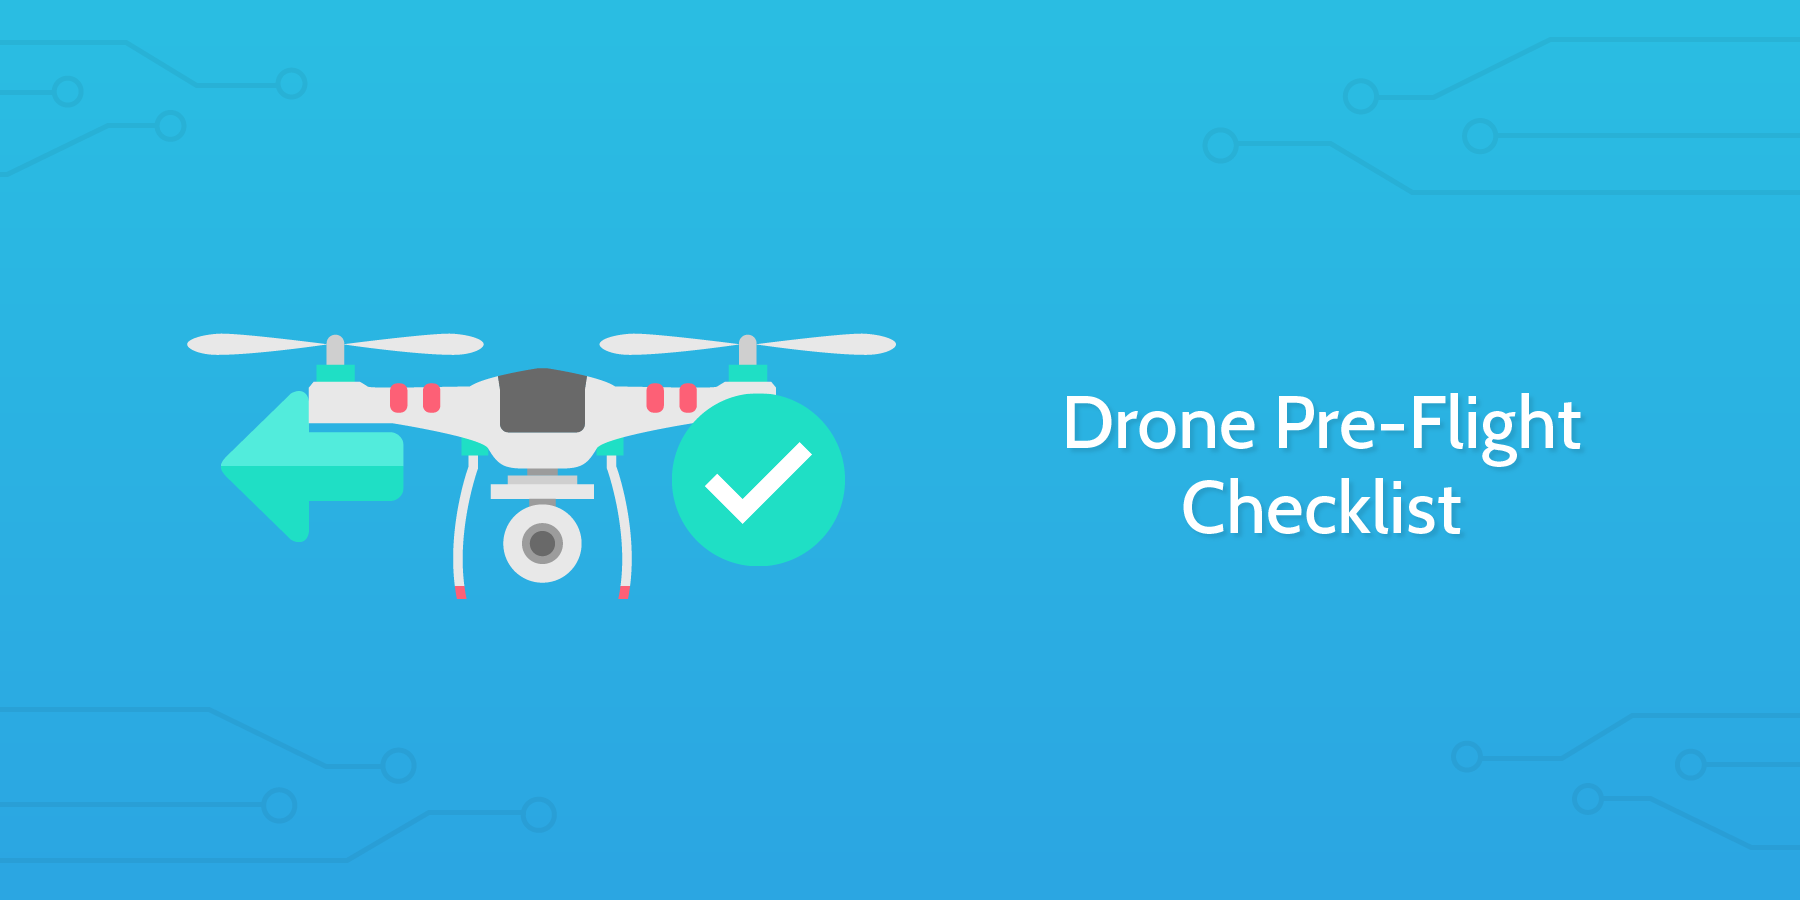 Drone Pre-Flight Checklist